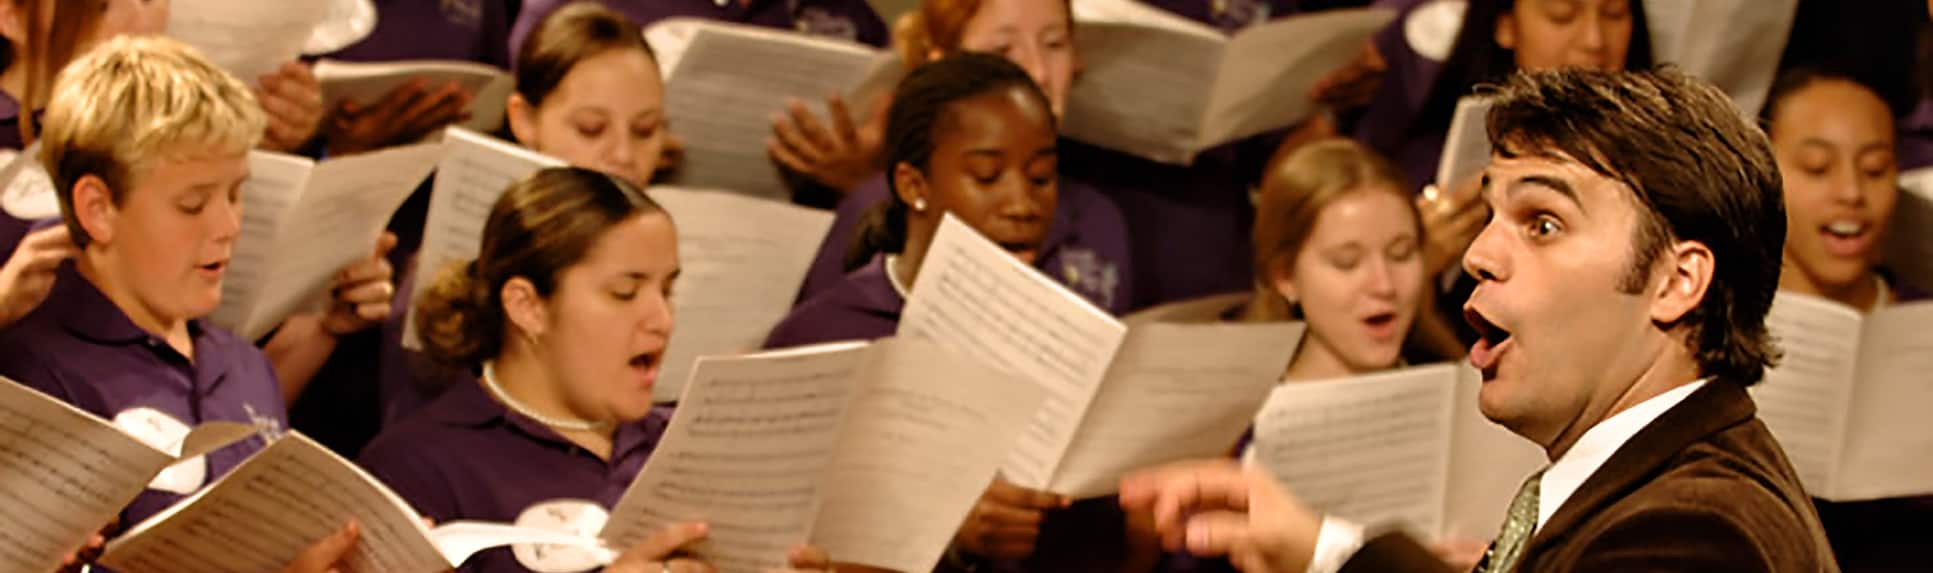 A conductor directing a group of young choir performers holding sheet music